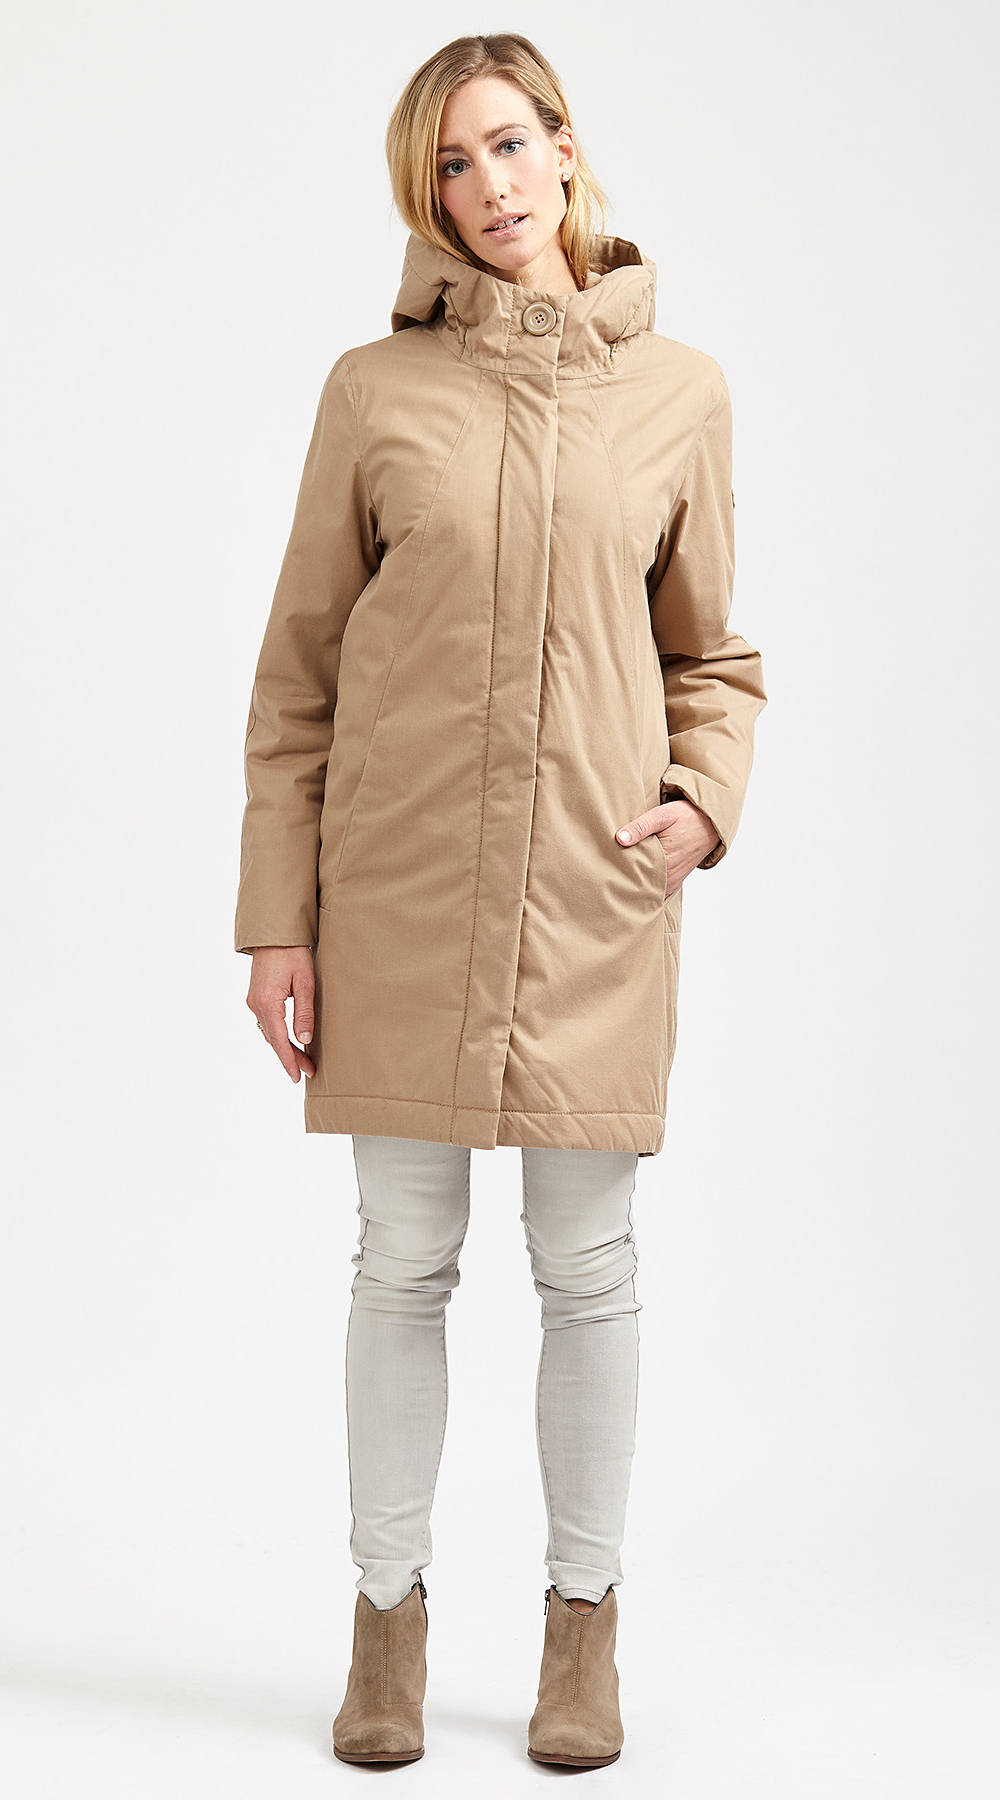 Langerchen Coat Ariza almond